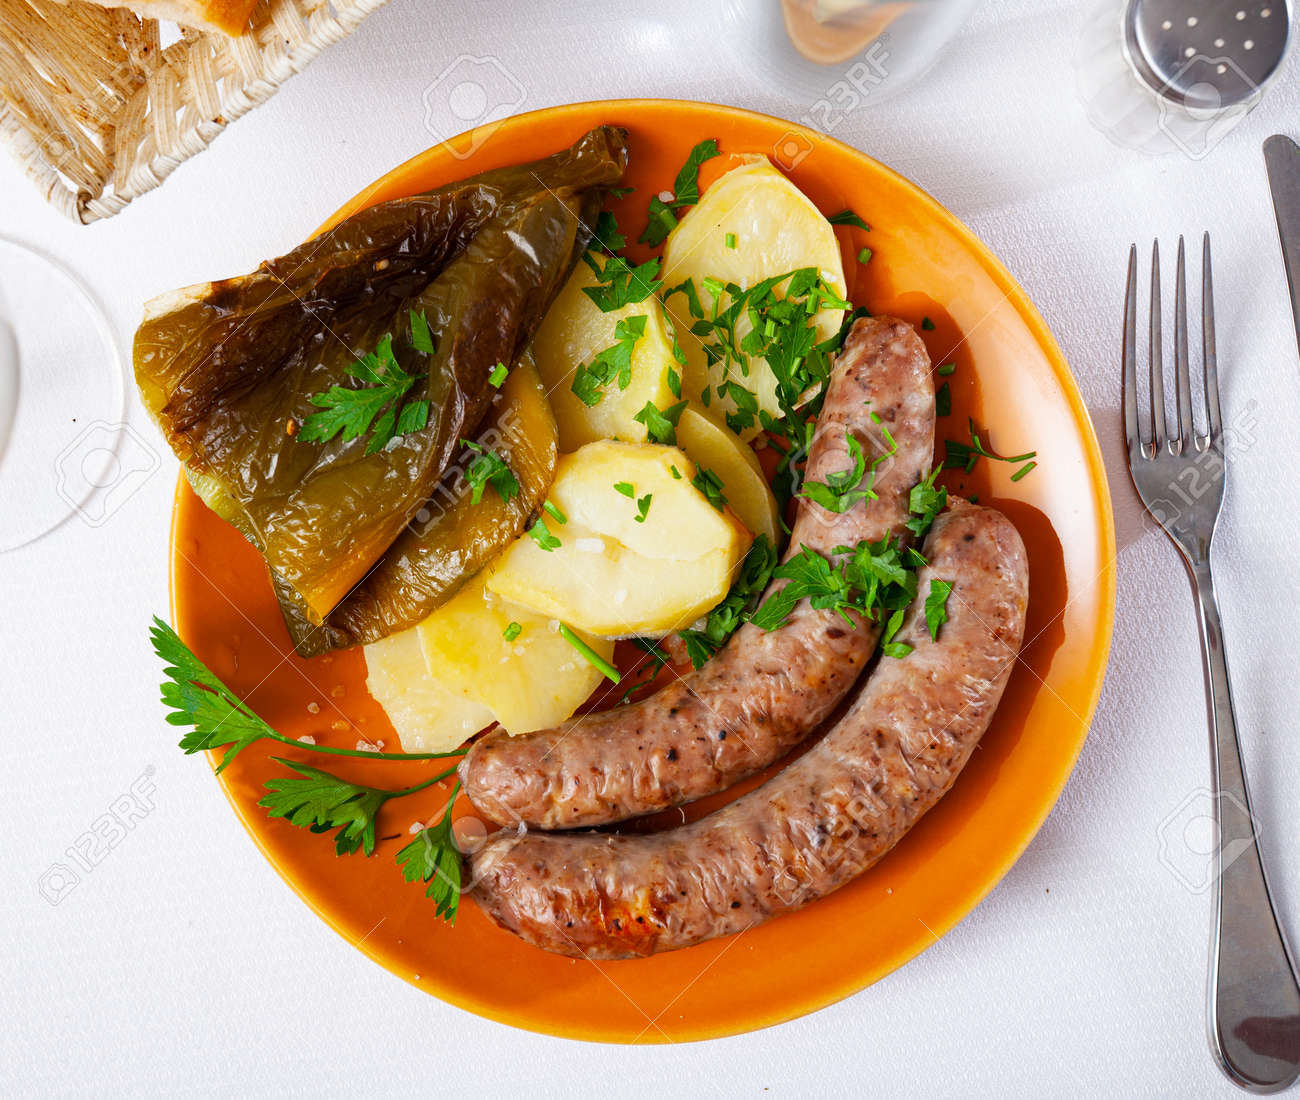 Tasty fried pork sausages with baked potatoes and pepper - 158413519